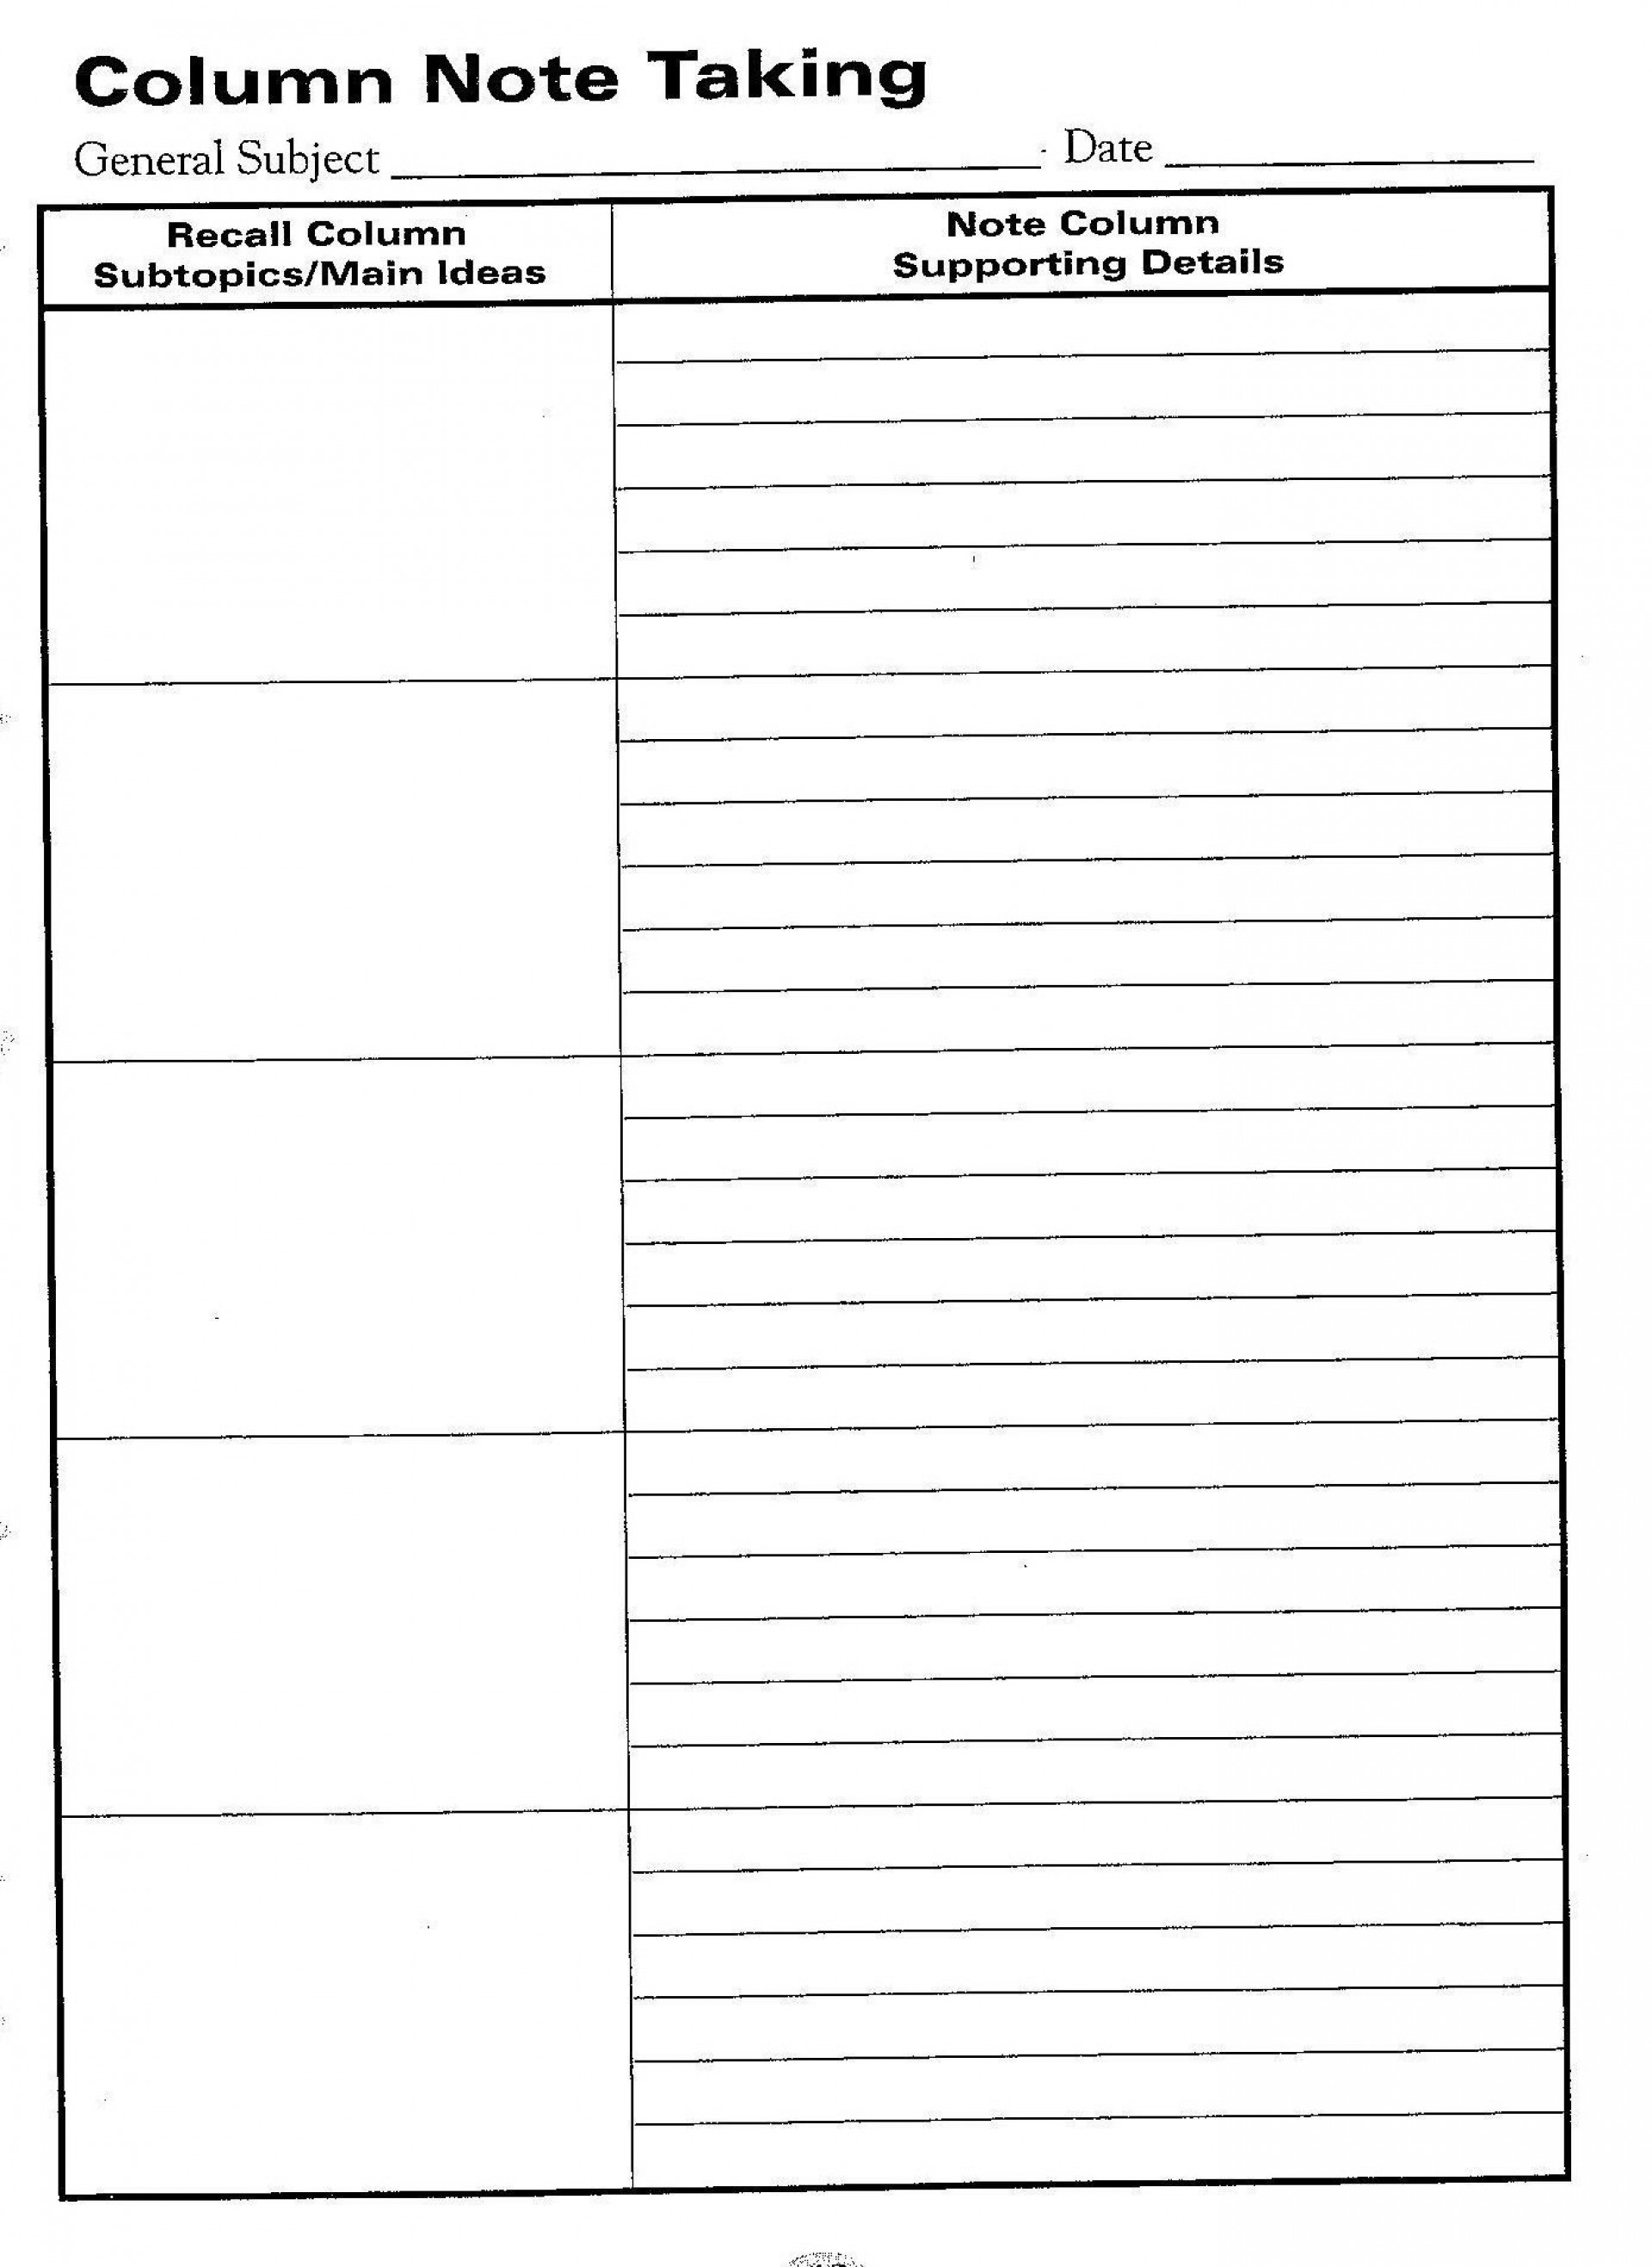 000 Outstanding Note Taking Template Word High Definition  Microsoft Cornell Doc Method1920